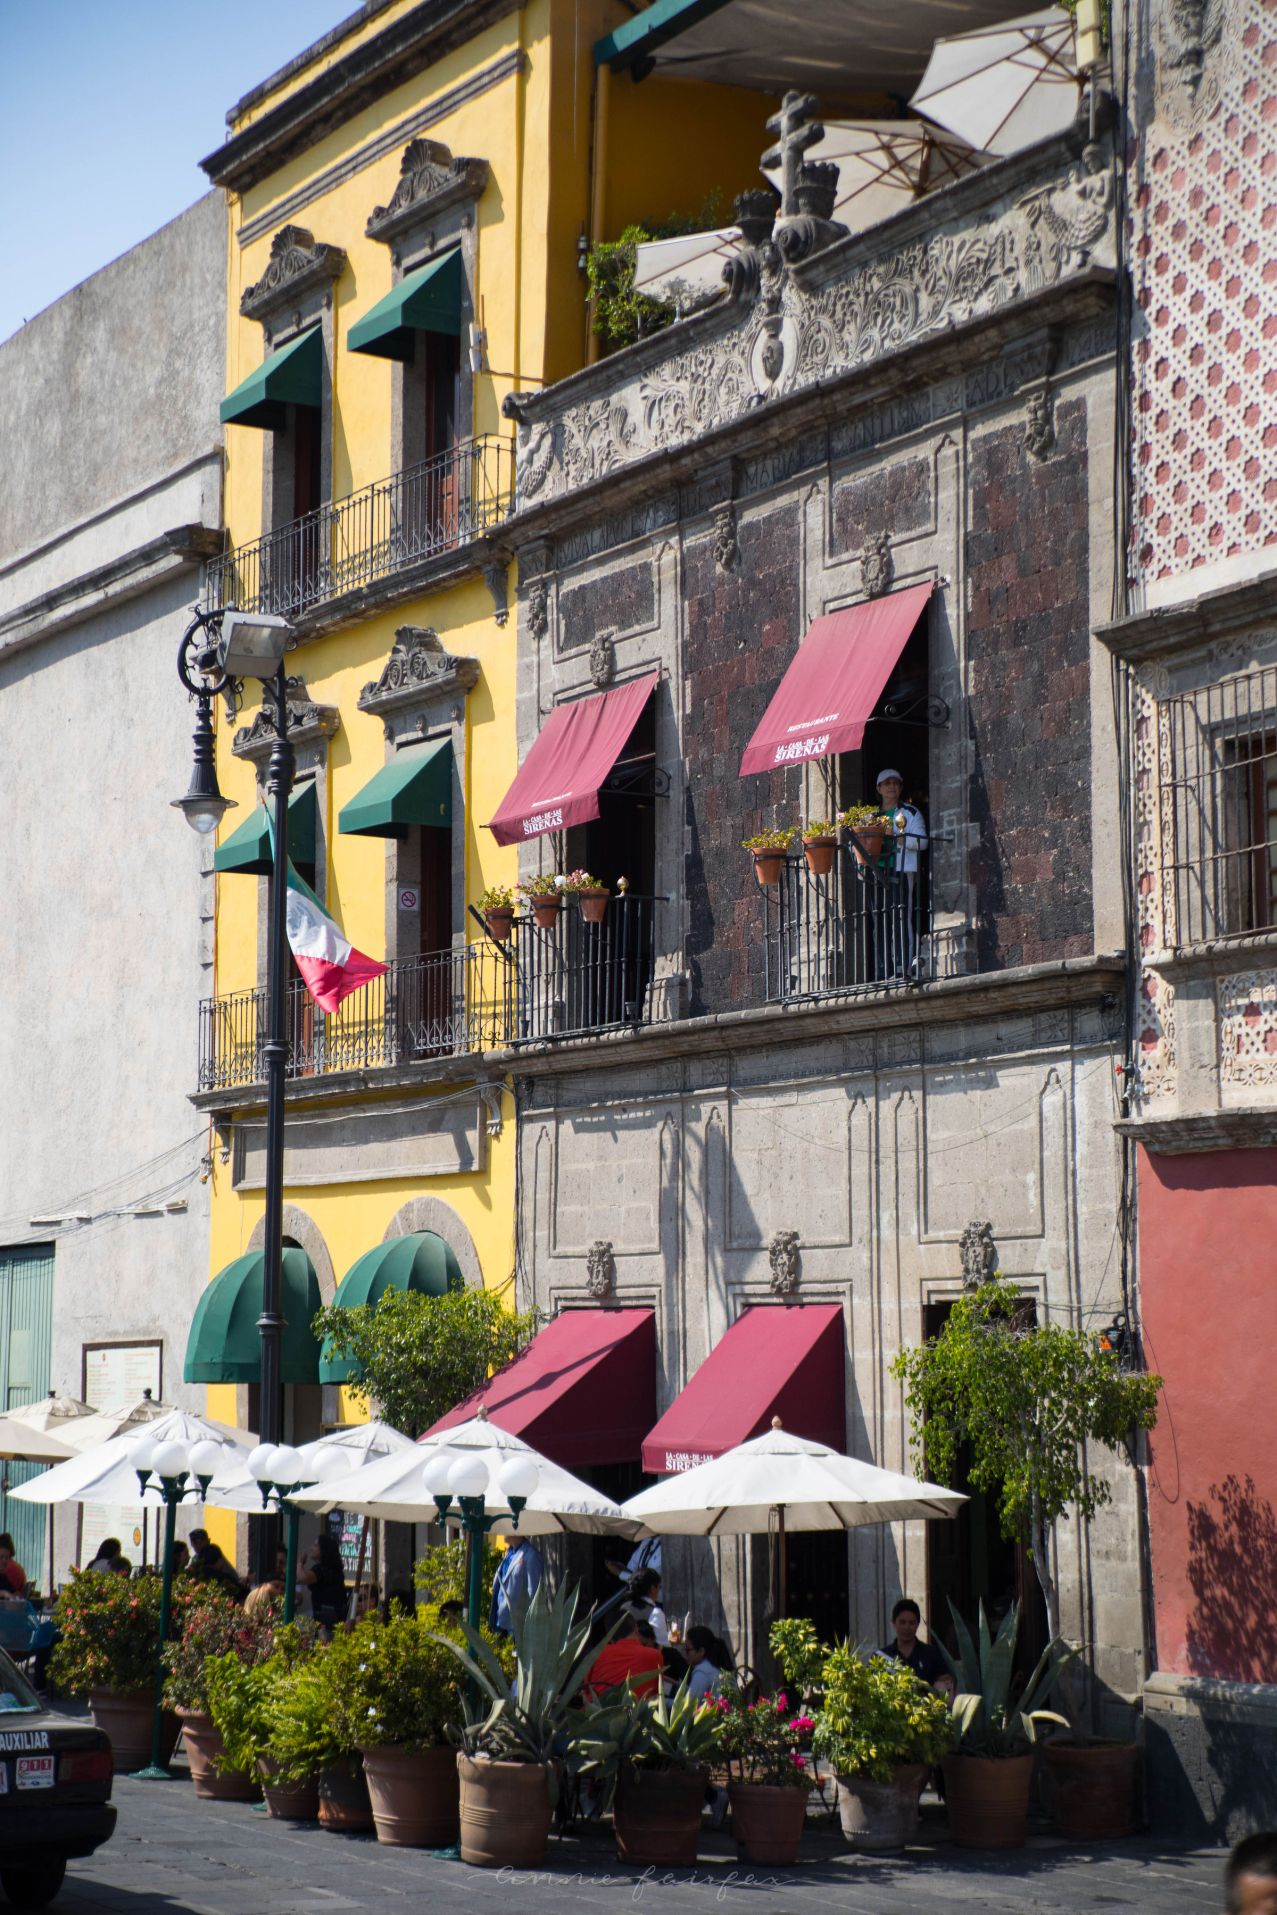 Colorful Buildings The Complete Traveler's Guide to Mexico City Mexico Where to Stay What to Eat Where to Visit What to Do Places to Avoid How to Stay Safe in Mexico City